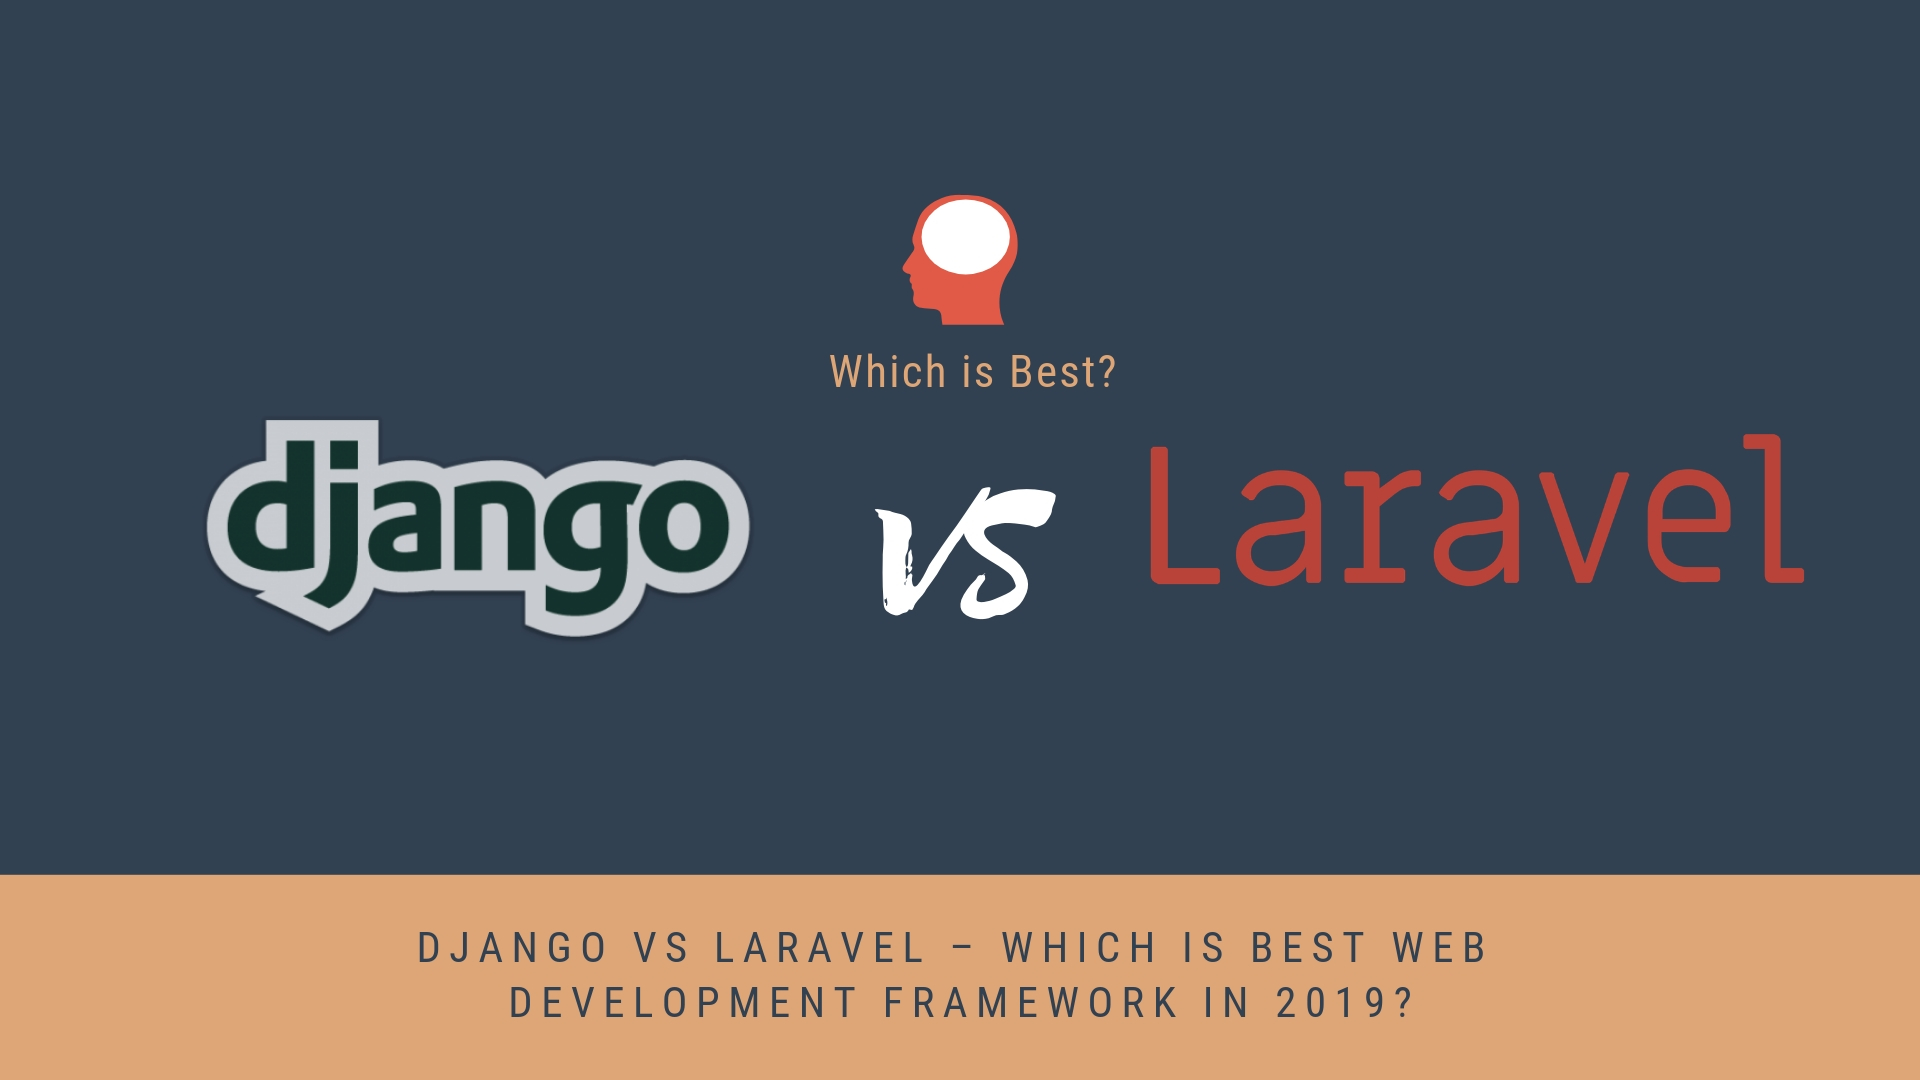 Django vs Laravel - Which is best Web Development Framework in 2019?